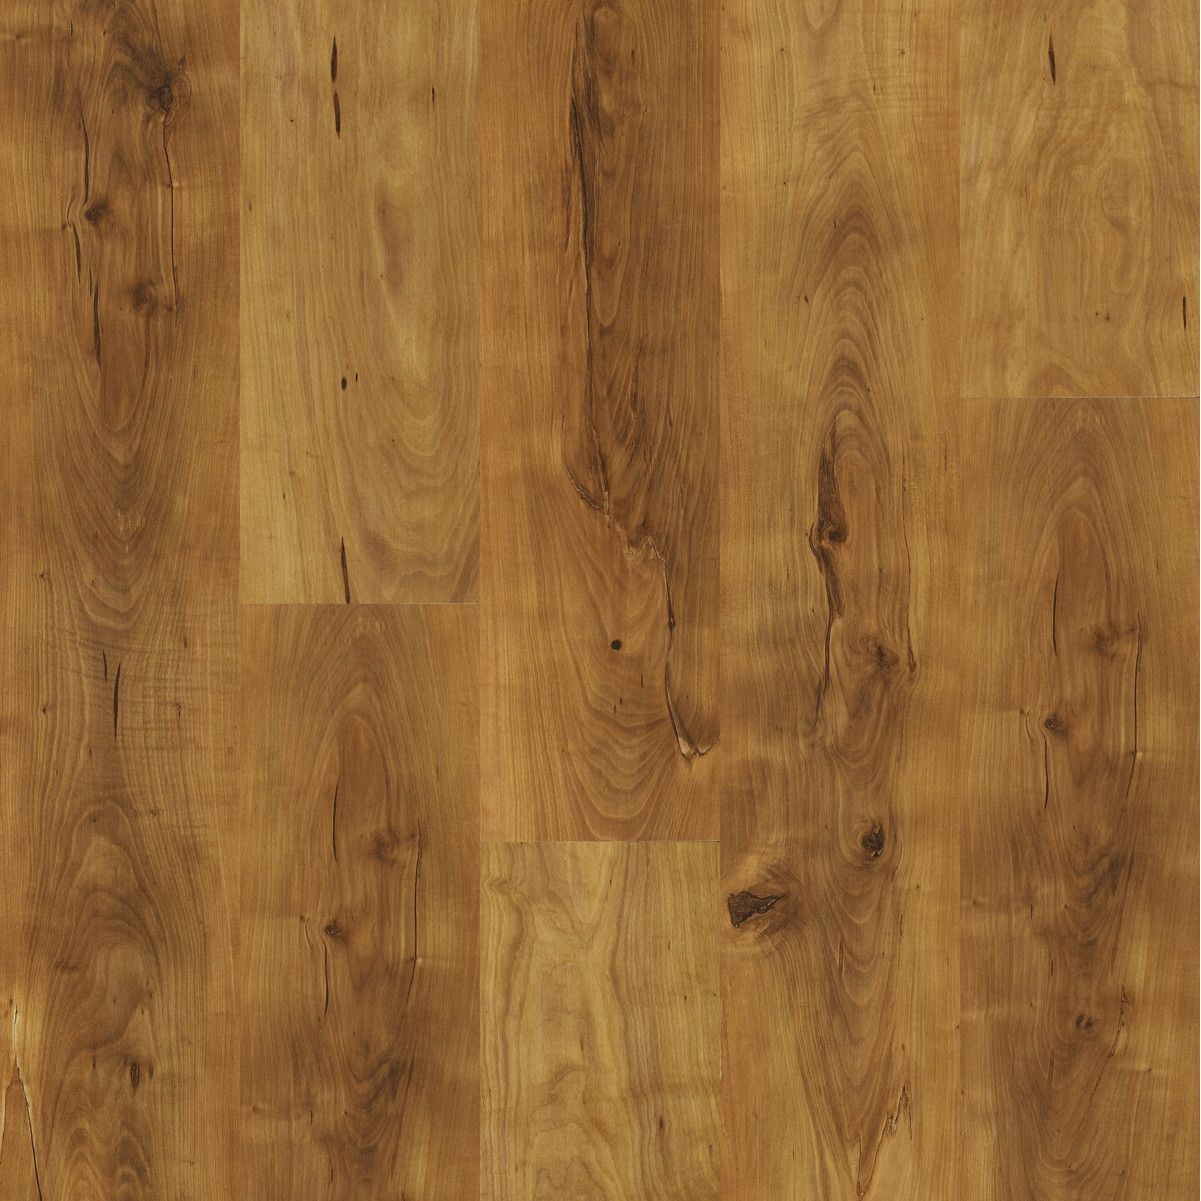 shaw hardwood flooring colors of 17 fresh hardwood laminate flooring pictures dizpos com pertaining to hardwood laminate flooring inspirational shaw floors natural values ii 6 5mm pine laminate in summerville collection